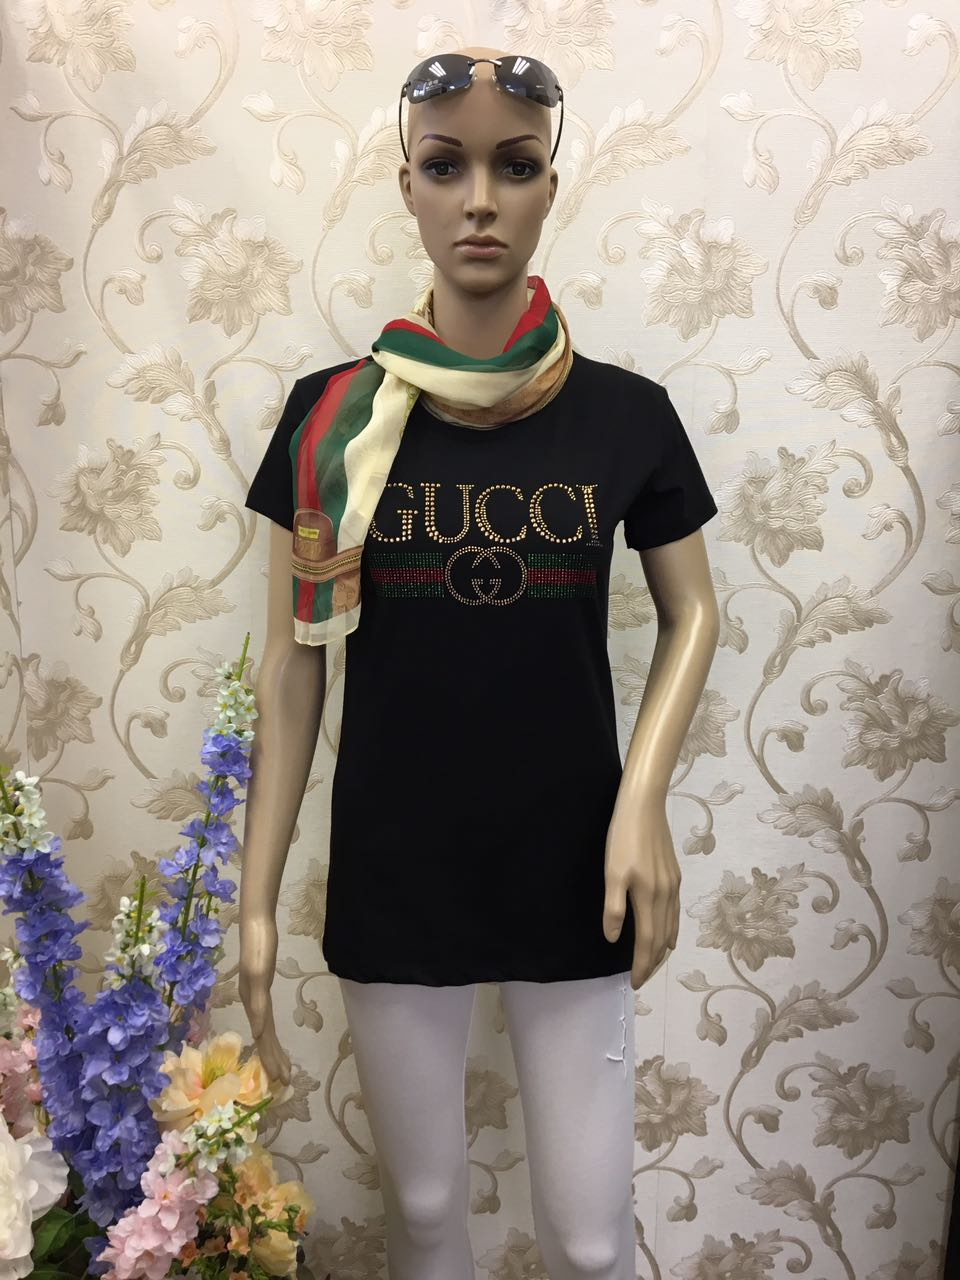 gucci-black-shirt-with-golden-sequence